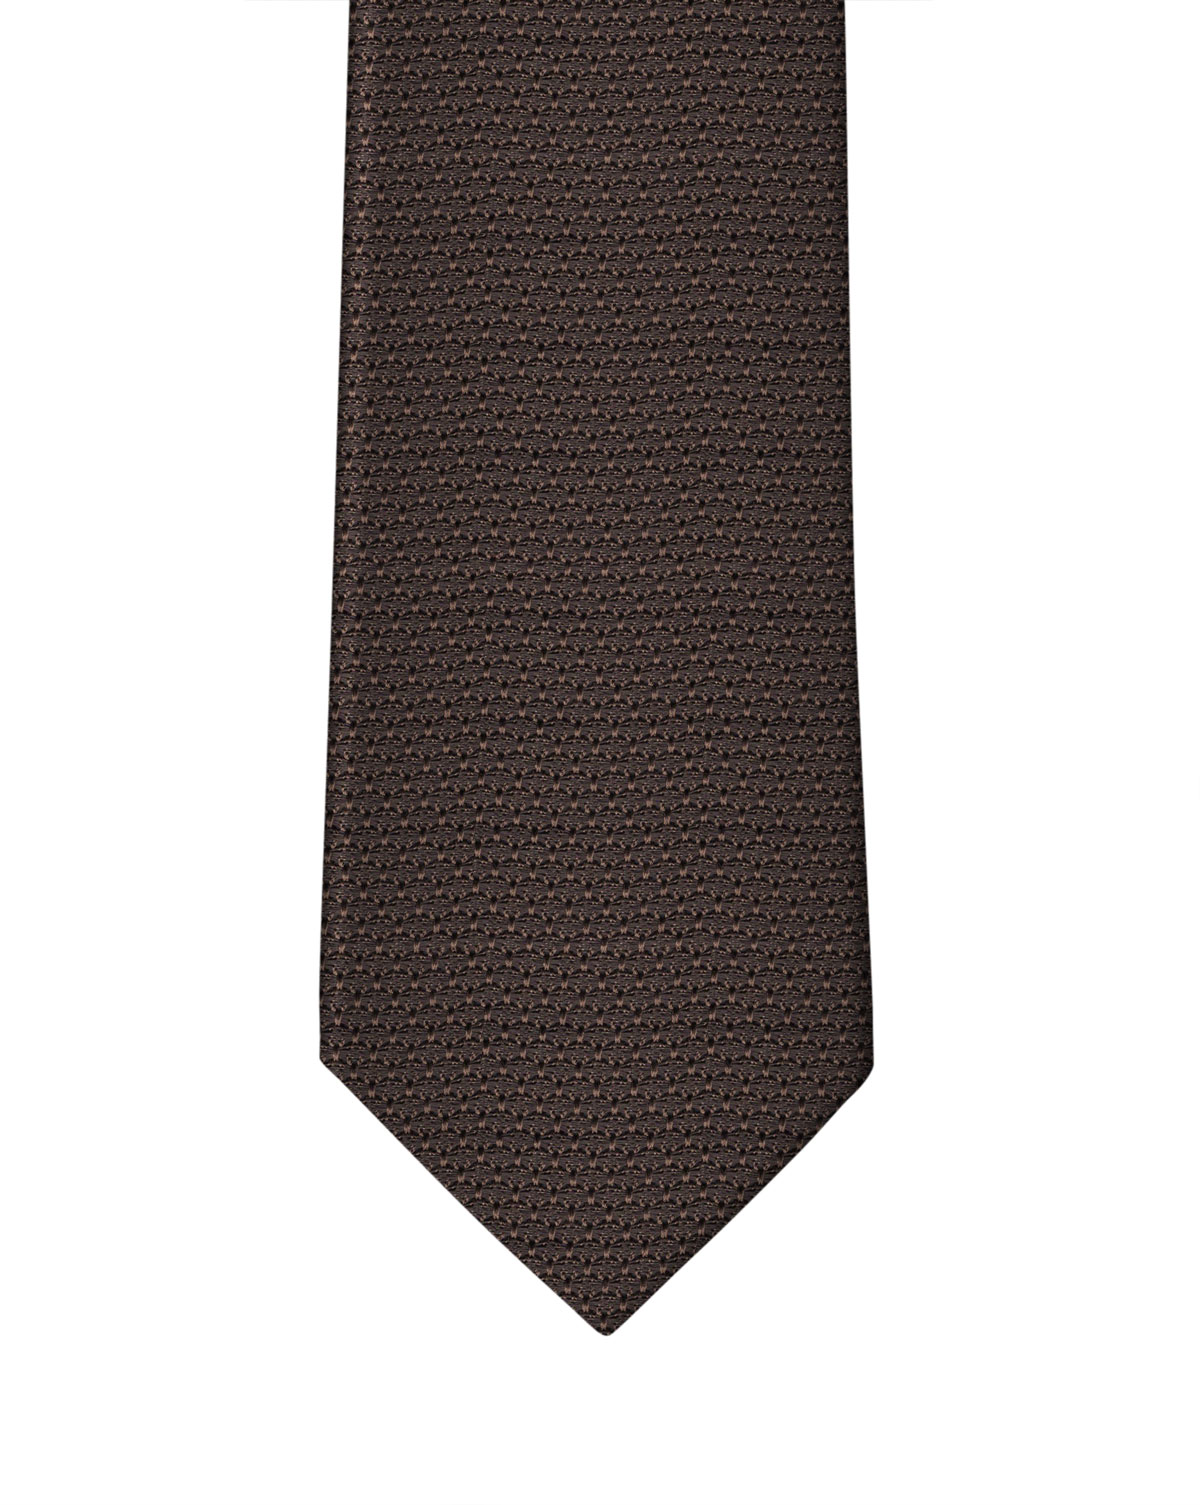 Chocolate Brown Grenadine Necktie